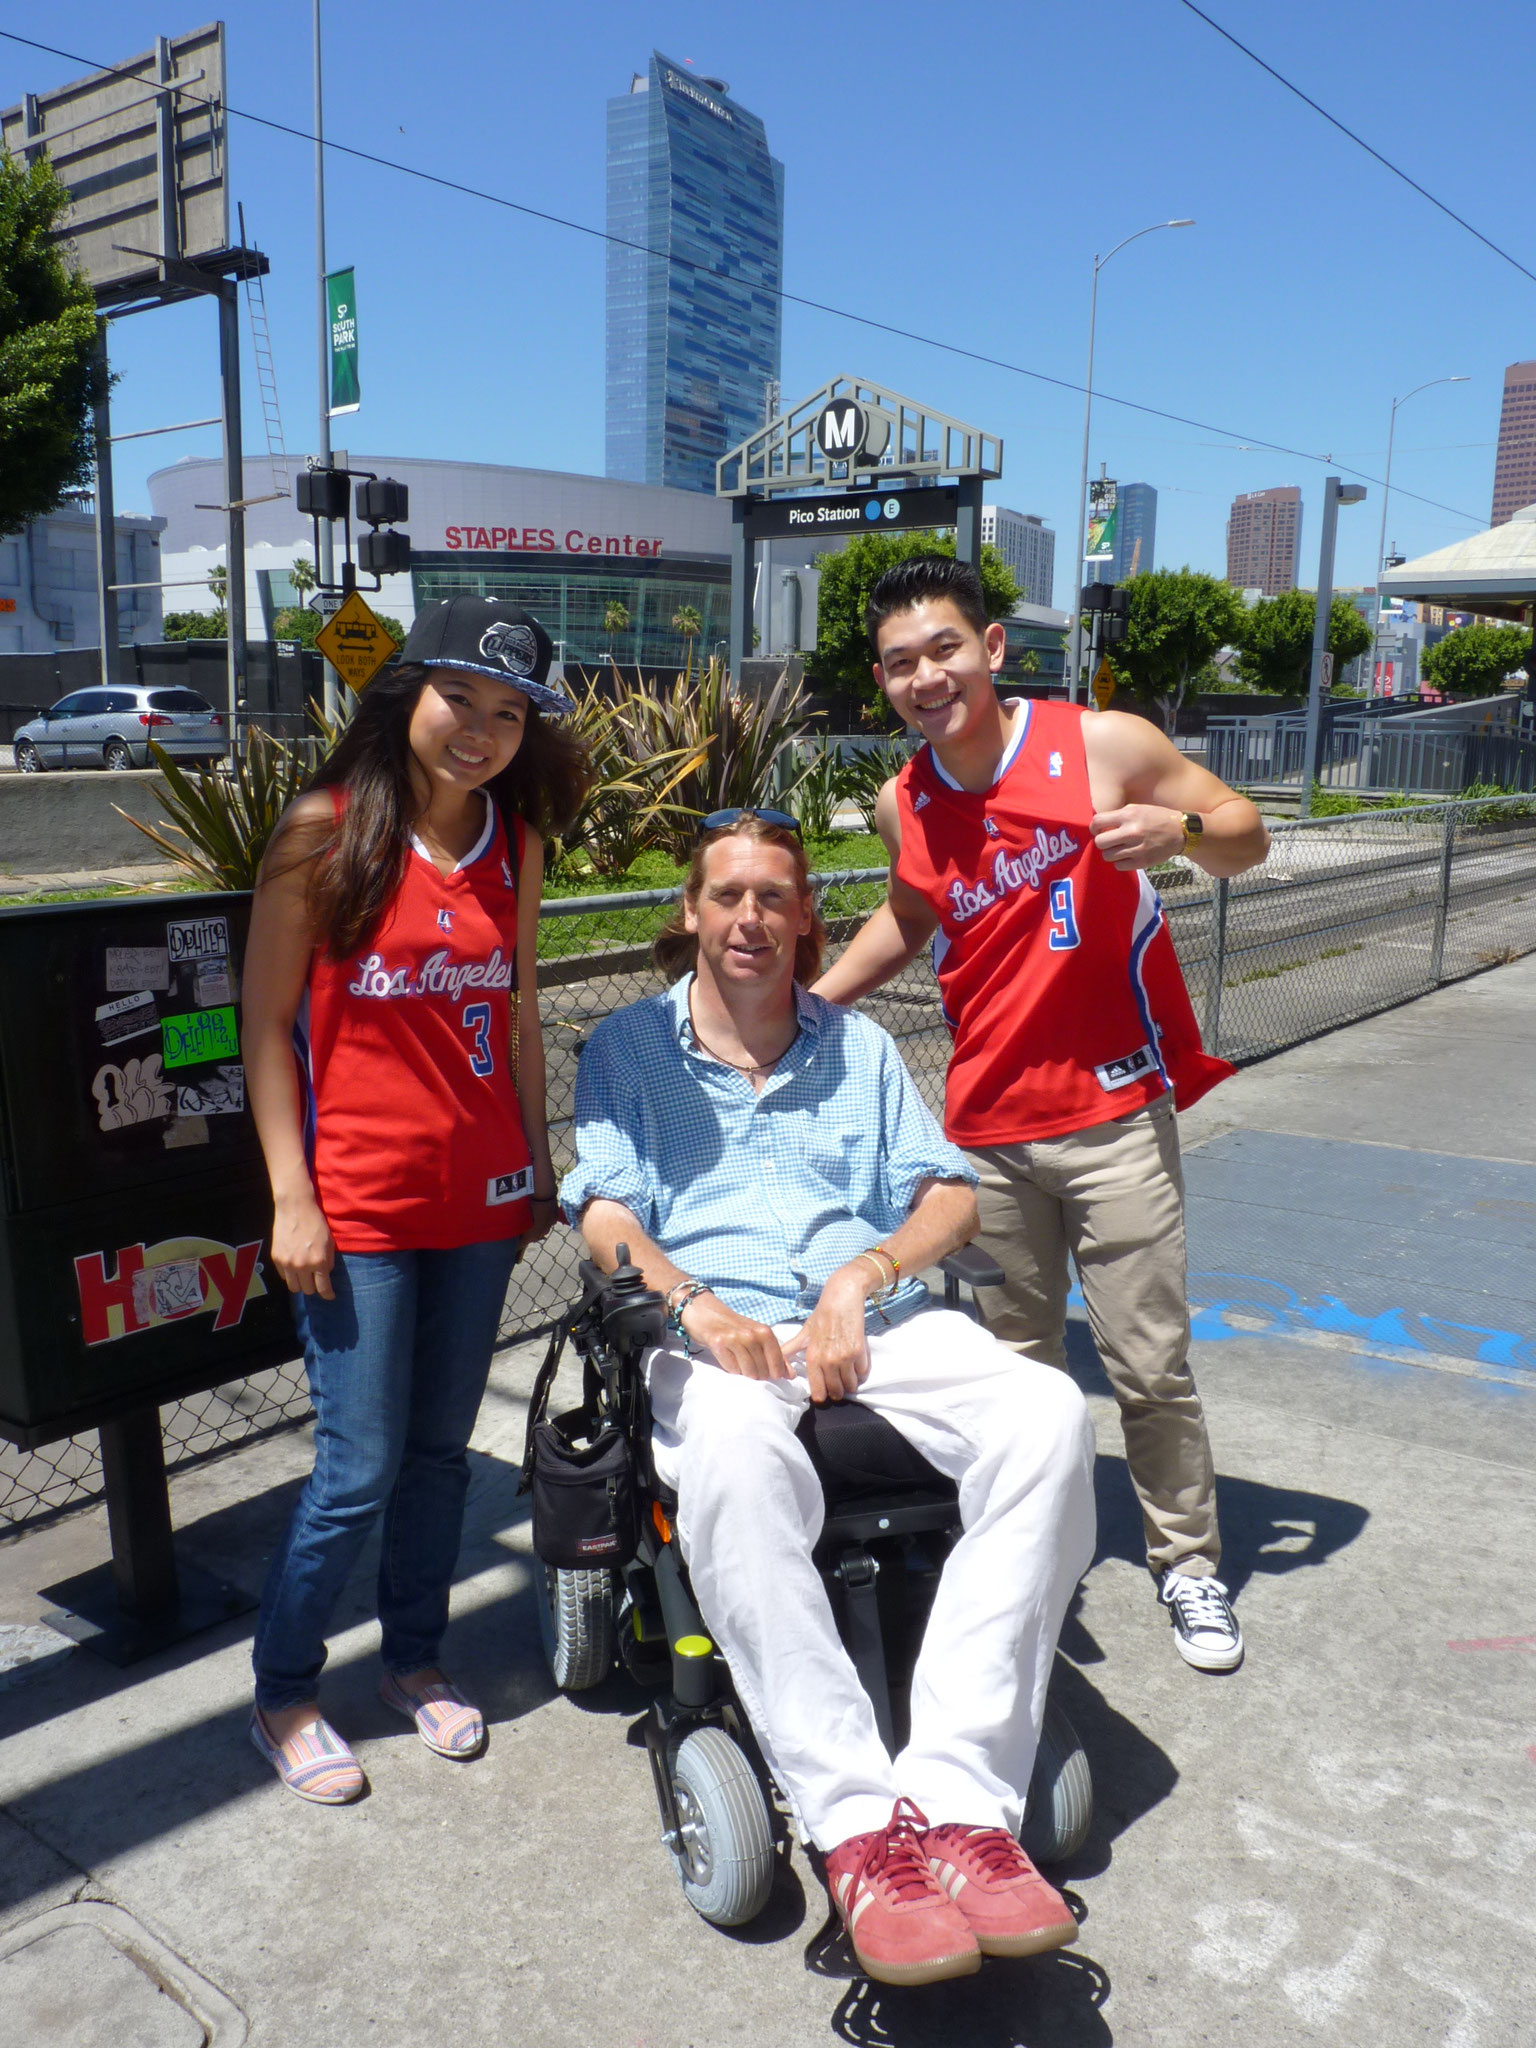 Los Angeles Clippers Fans (NBA)